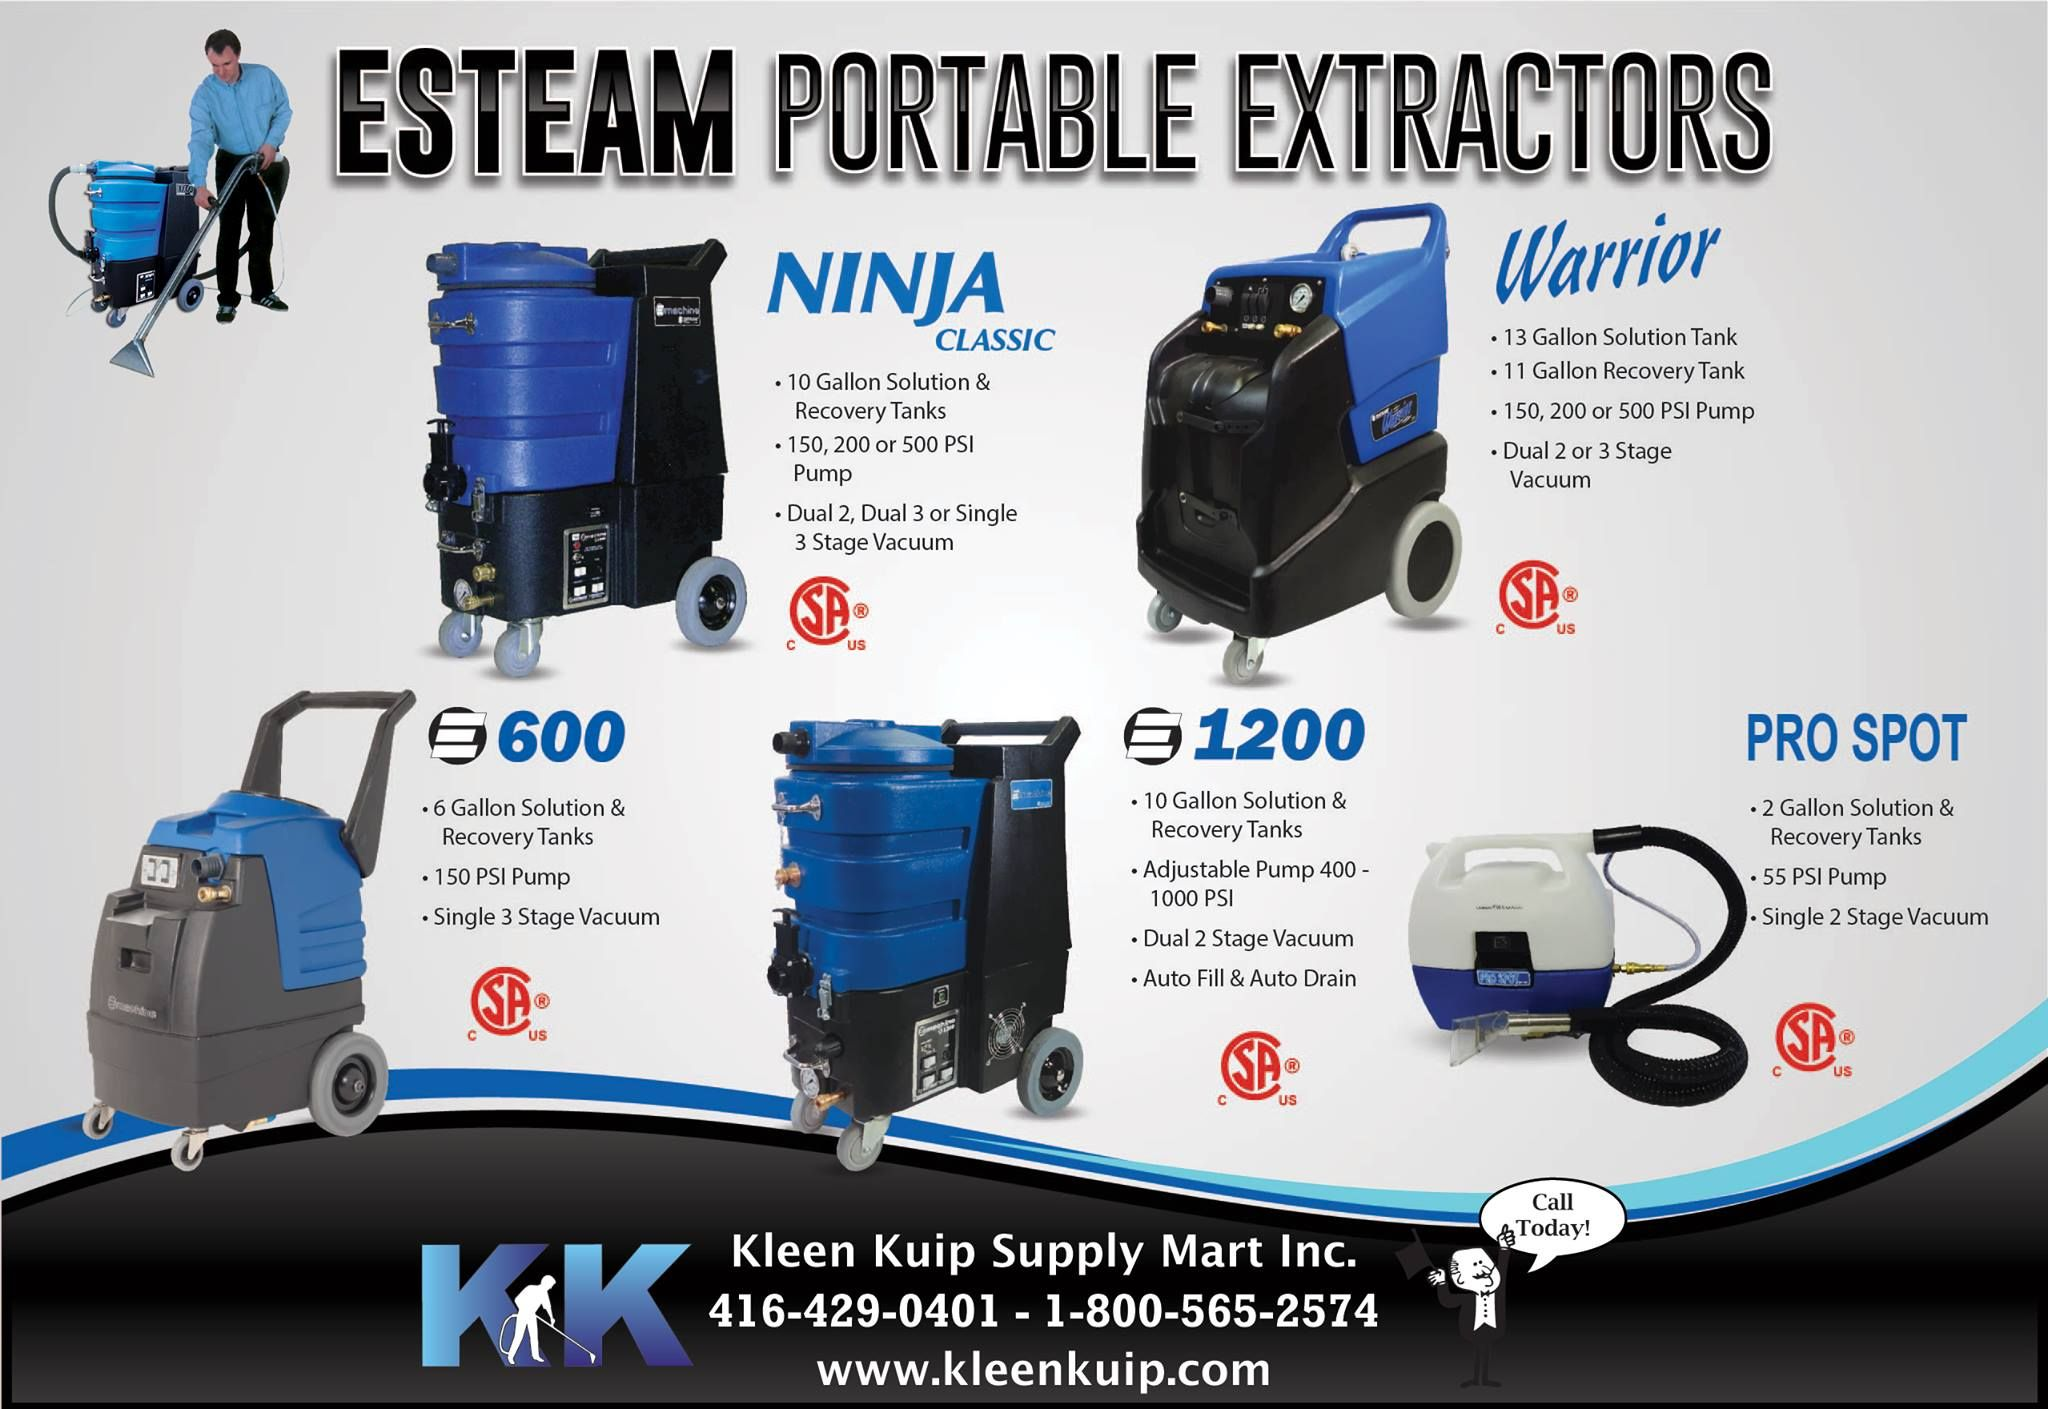 Portable Carpet Cleaning Machines Toronto Gta In 2020 Portable Carpet Carpet Cleaning Machines Carpet Steam Cleaner